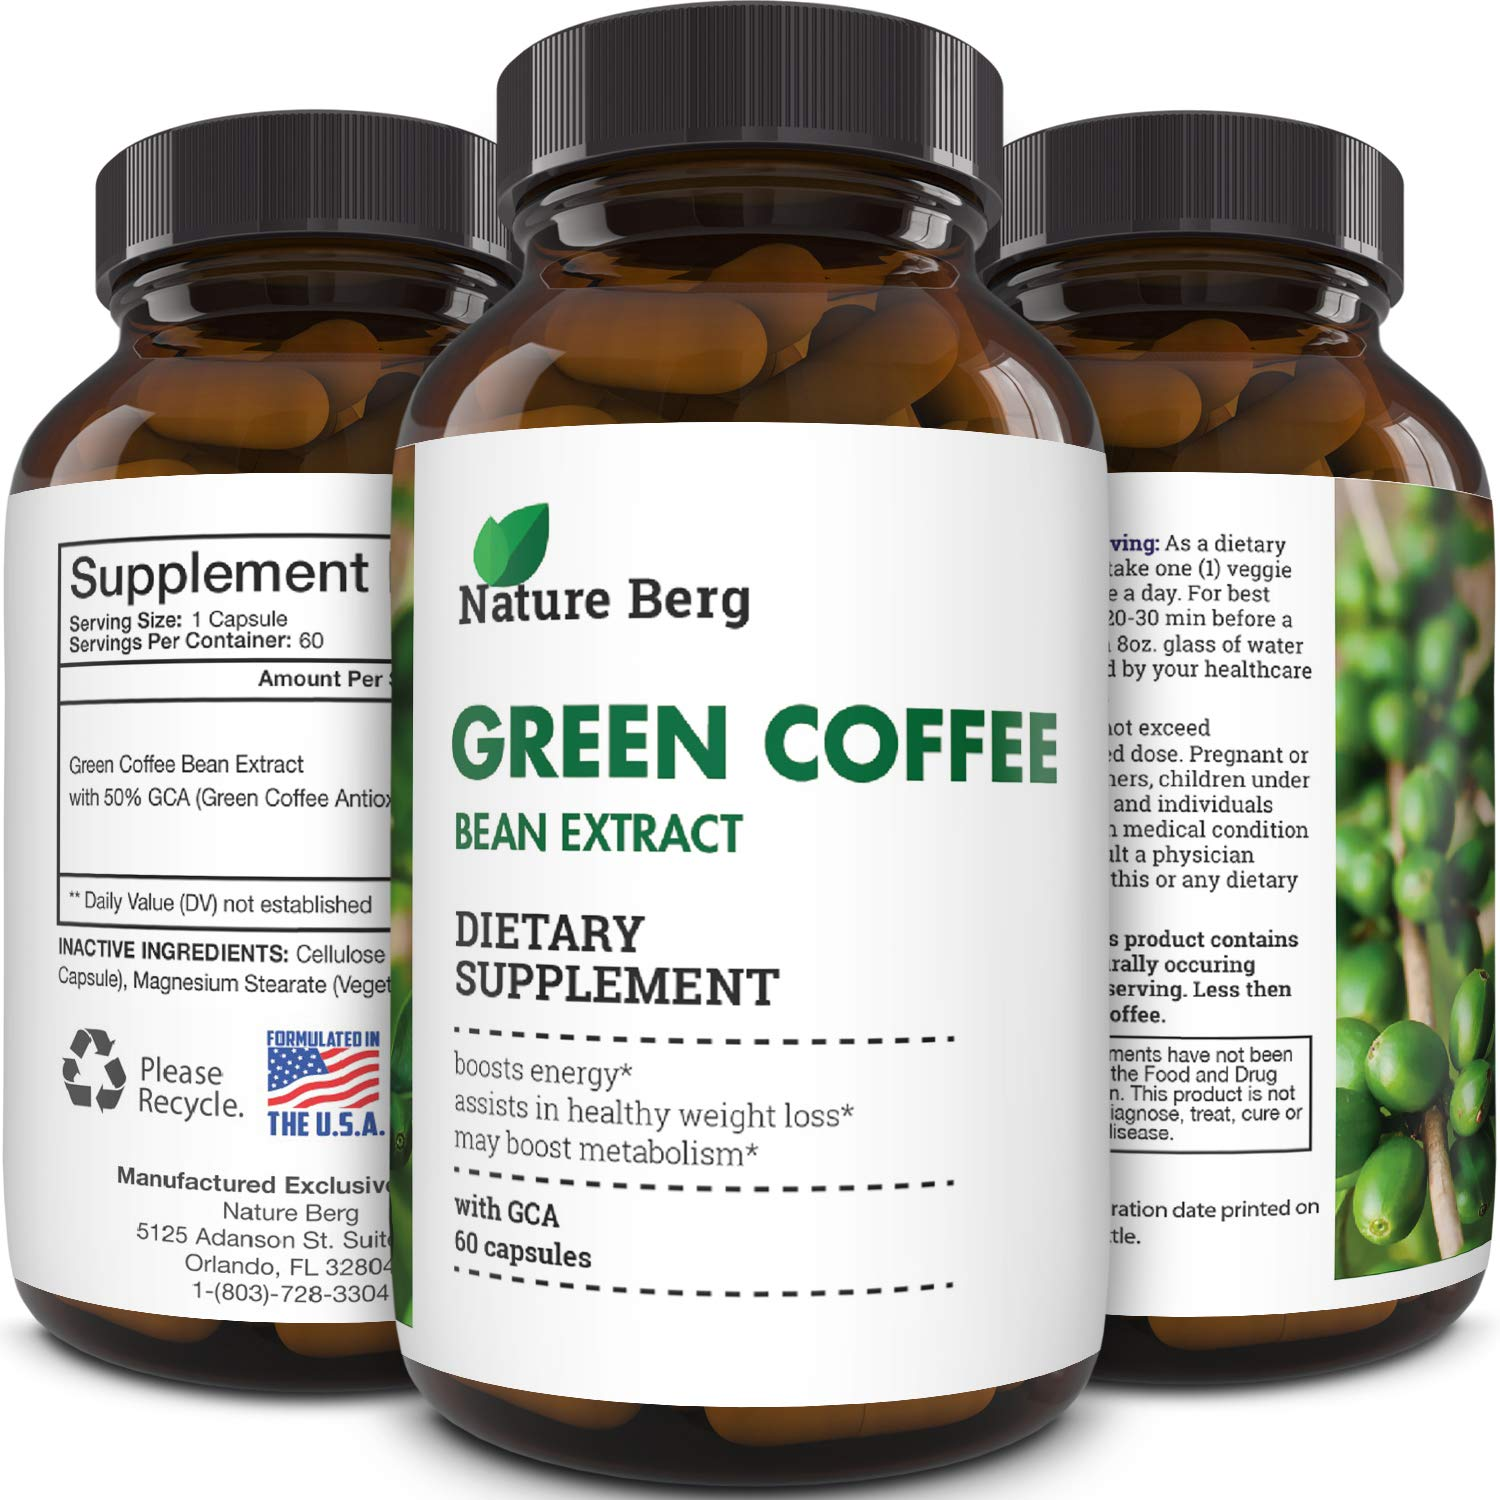 Natural Raw Green Coffee Bean Extract - Extra Strength Pure Premium Antioxidant Beans - 800 mg Max Fat Burner Supplement Super Cleanse Pills for Weight Loss Benefits Reviews - Nature Berg by Nature Berg